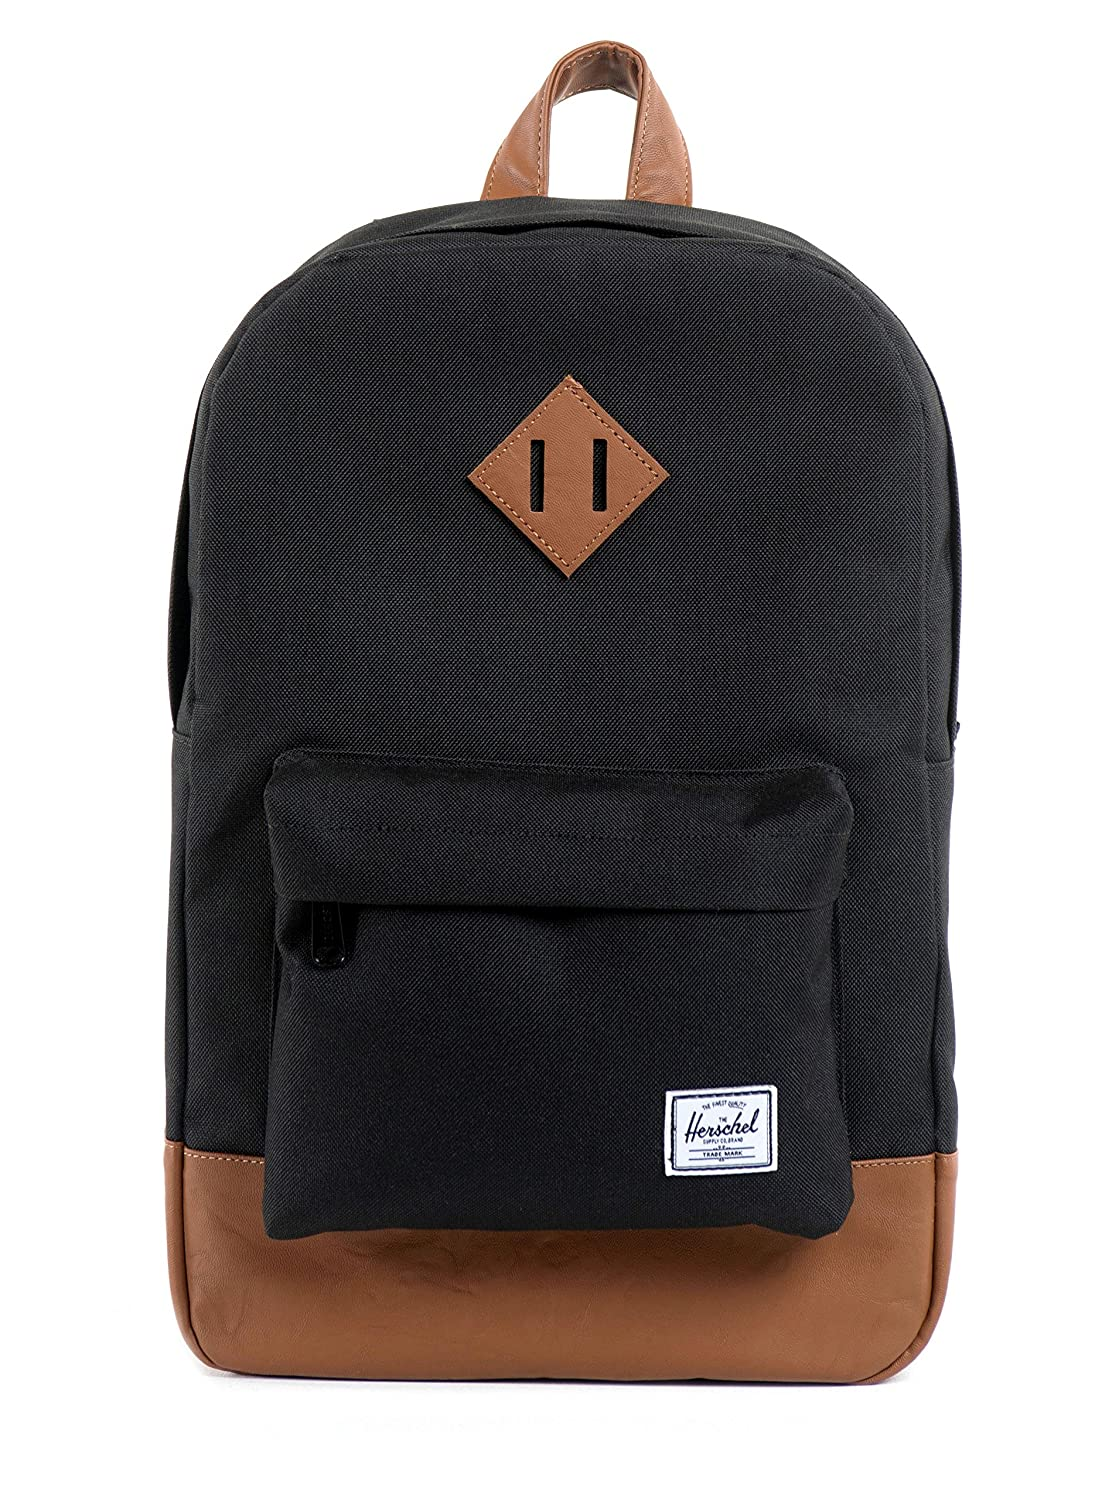 e25718af1f3 Best Herschel Backpack For College Students- Fenix Toulouse Handball